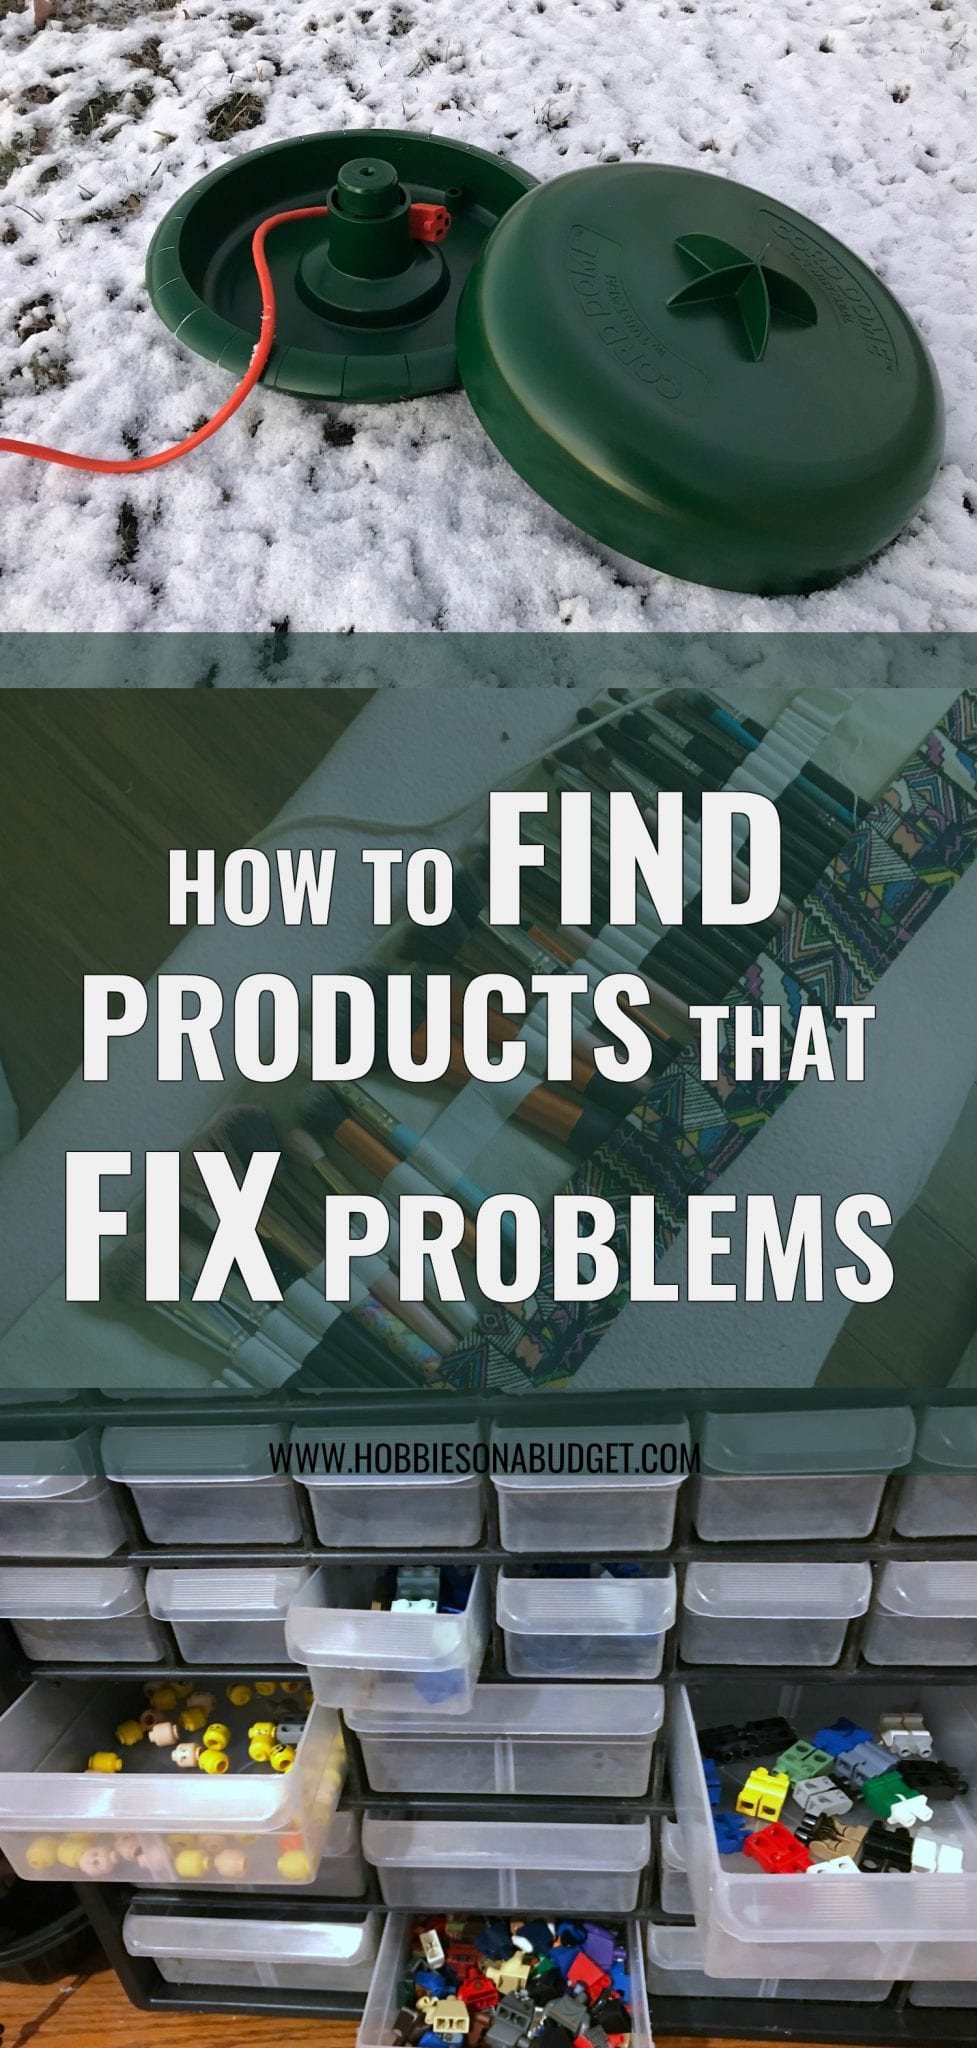 How to Find Products to Fix Problems